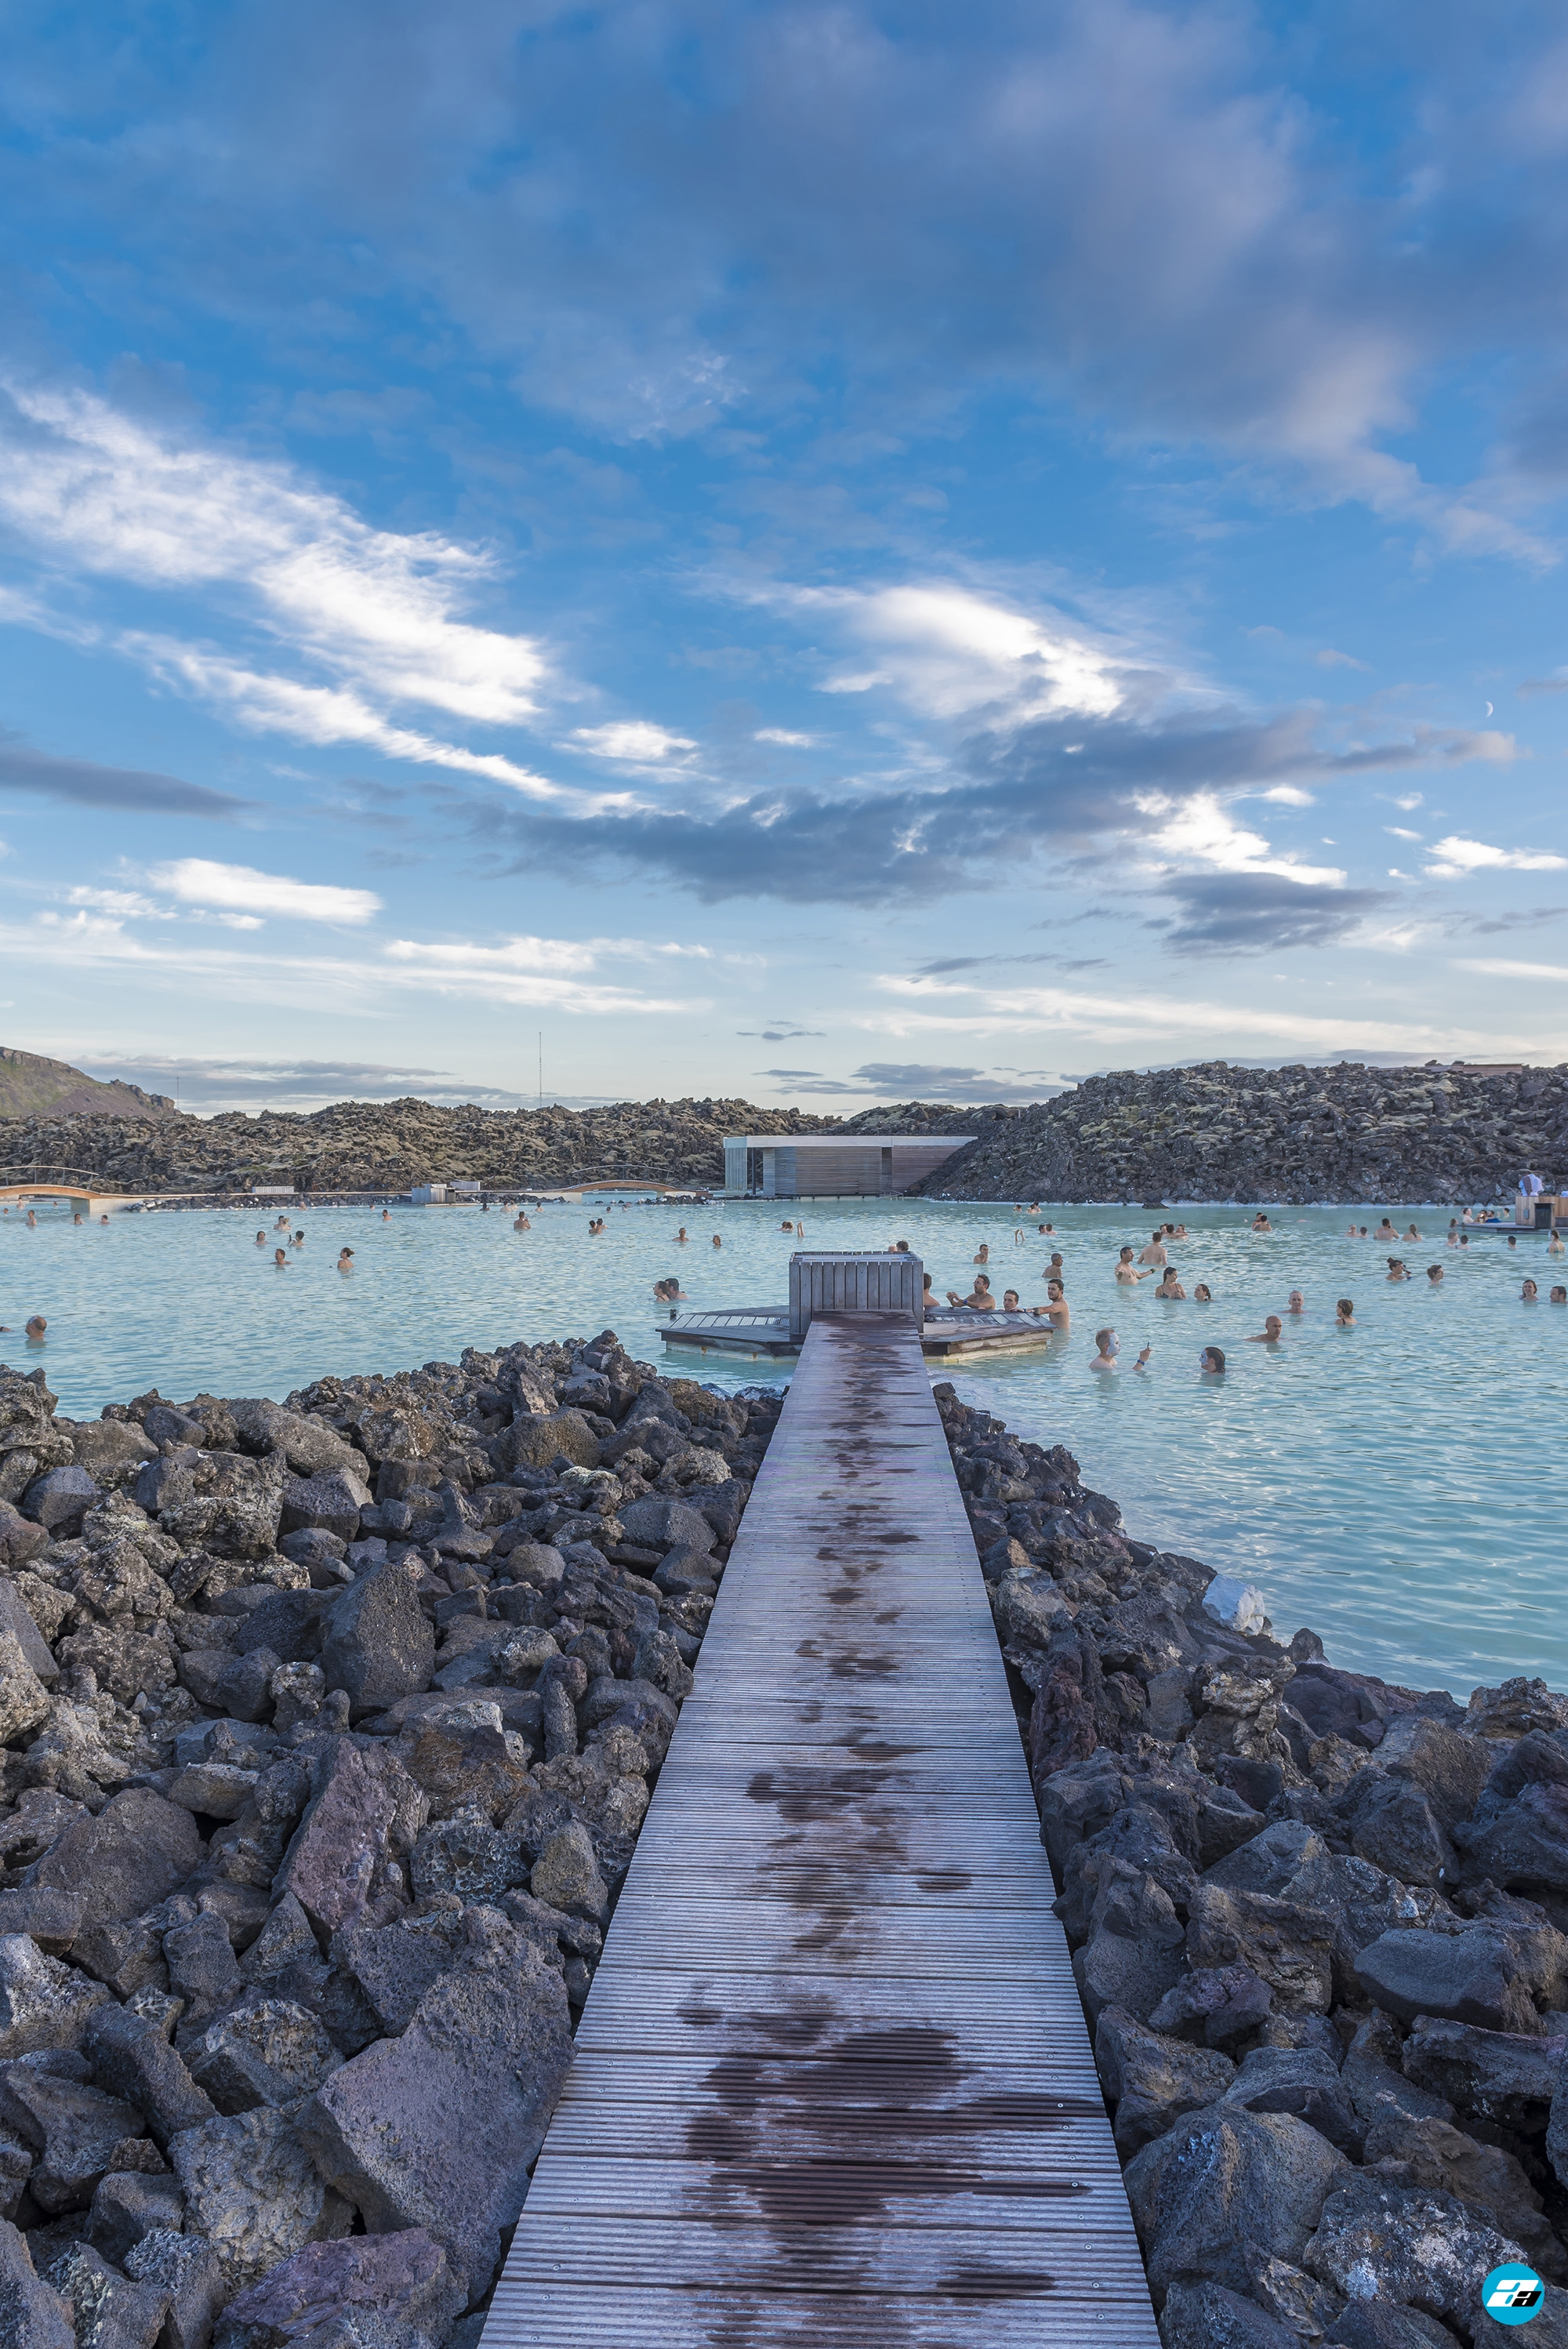 Iceland Travel, Ring Road, The Blue Lagoon, Grindavík. Thermal Baths. People Enjoying.